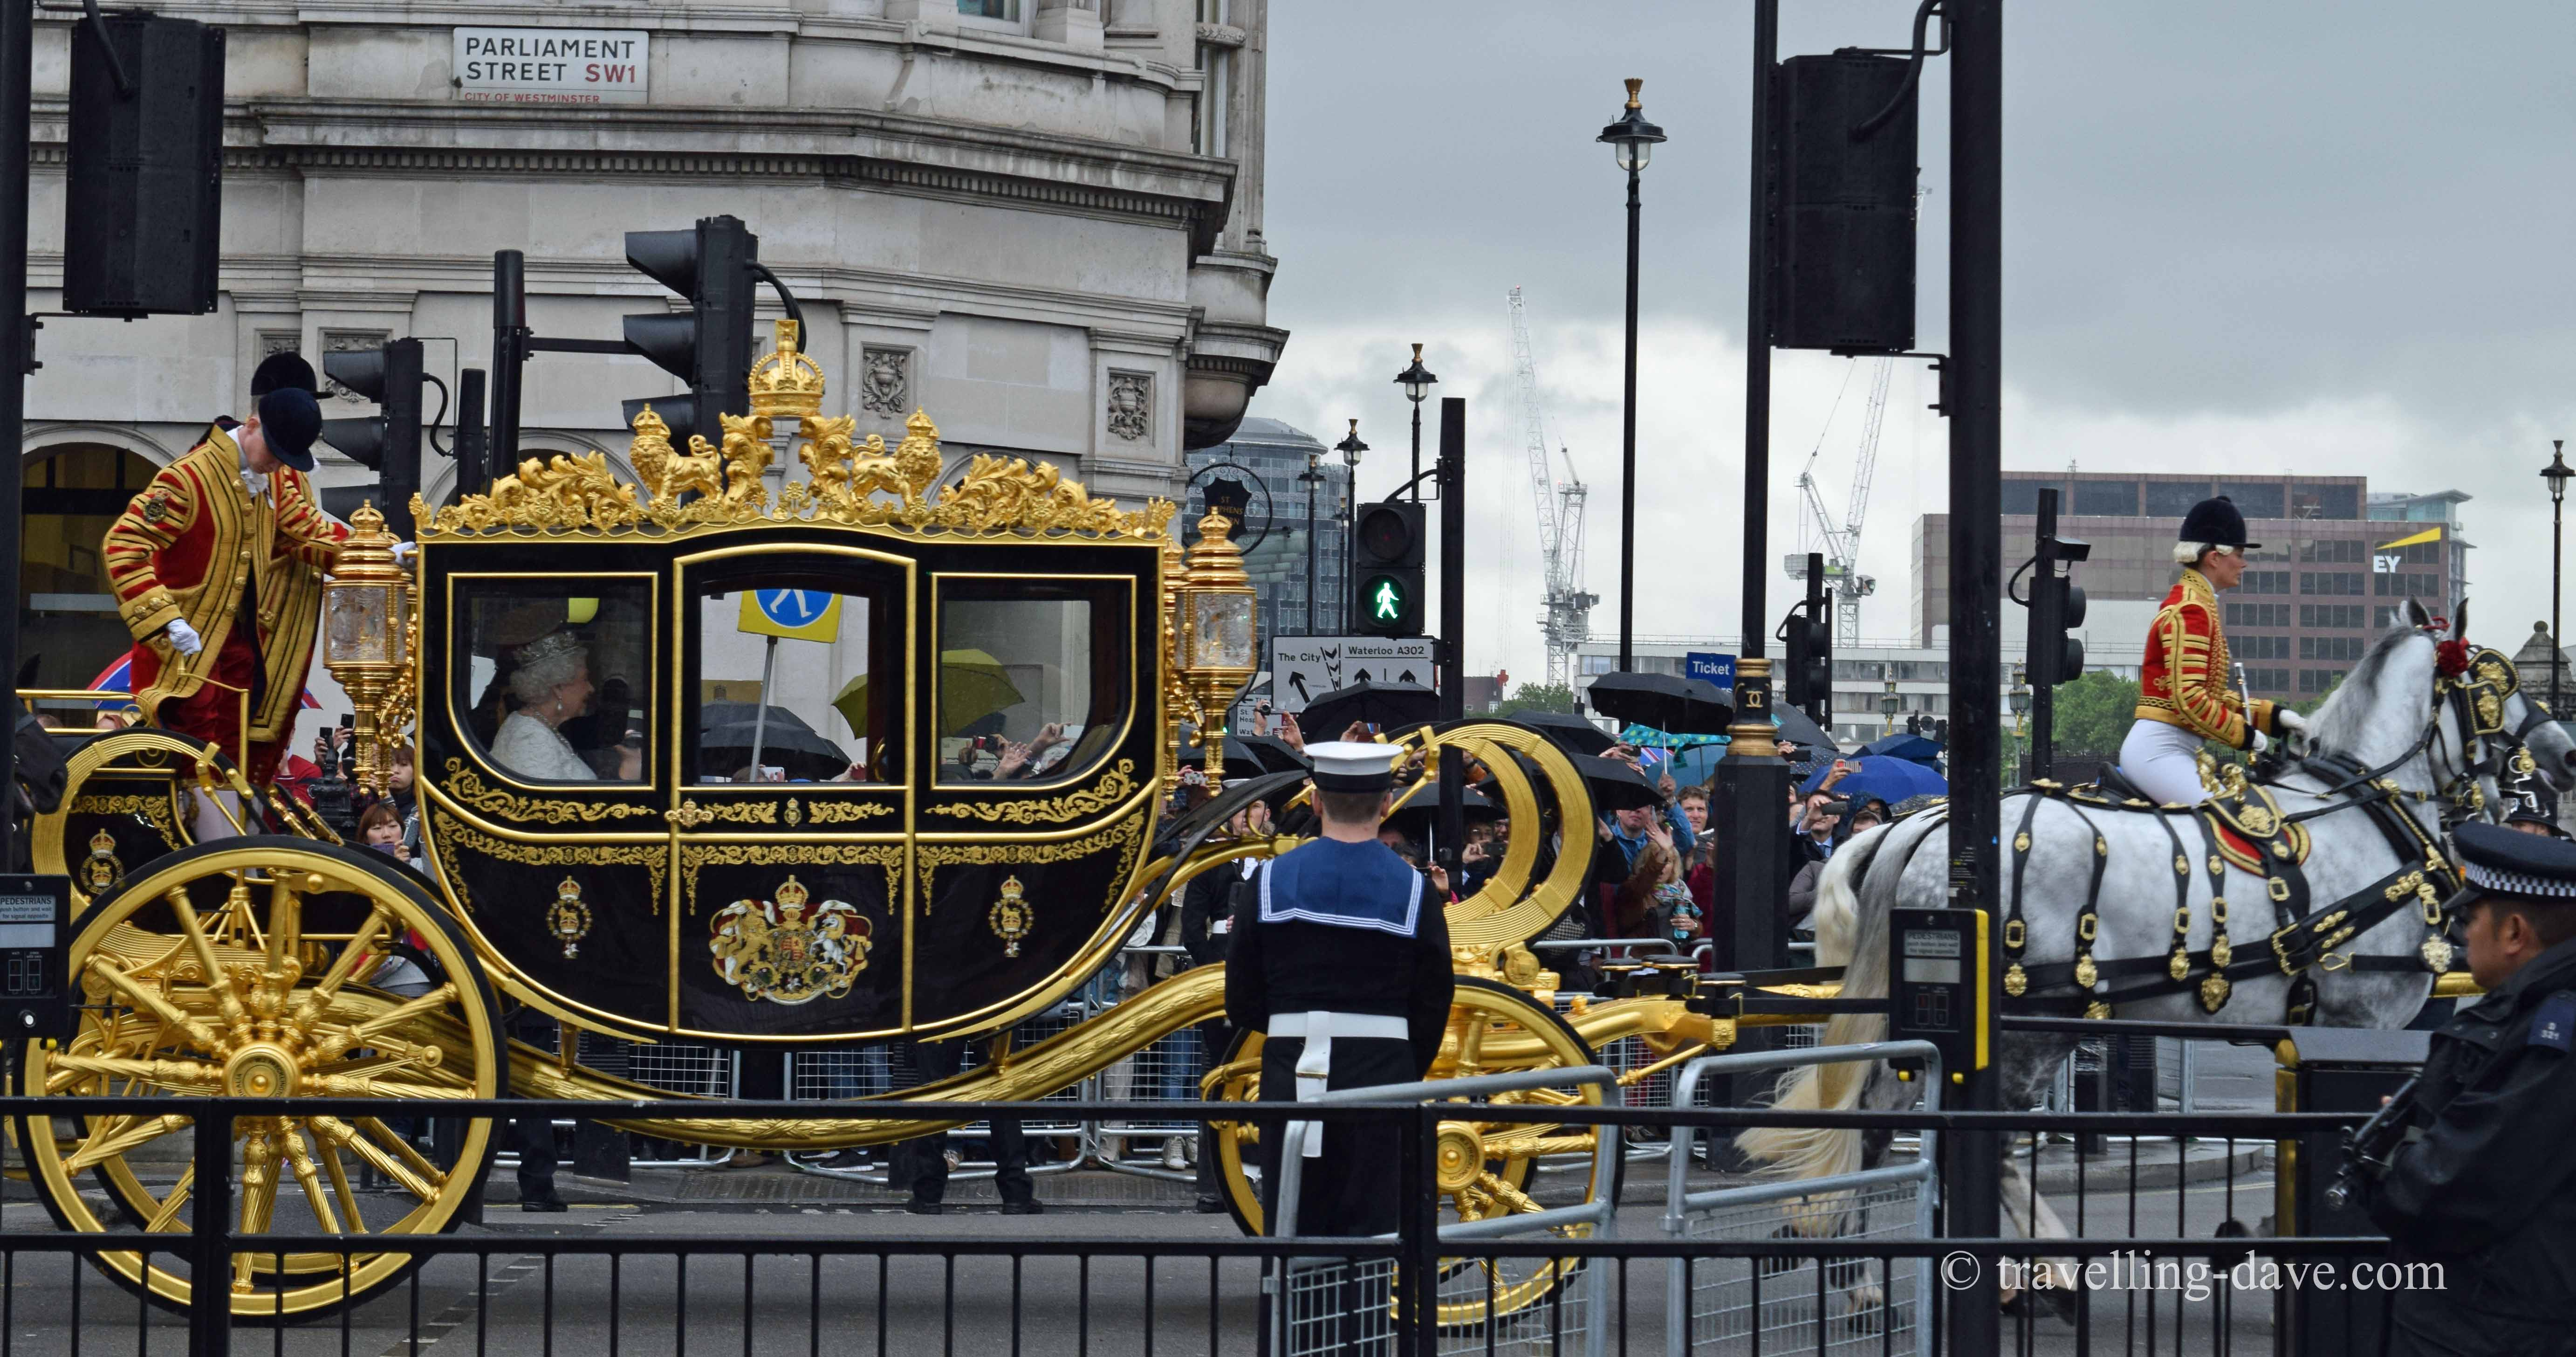 The Queen in her carriage in London